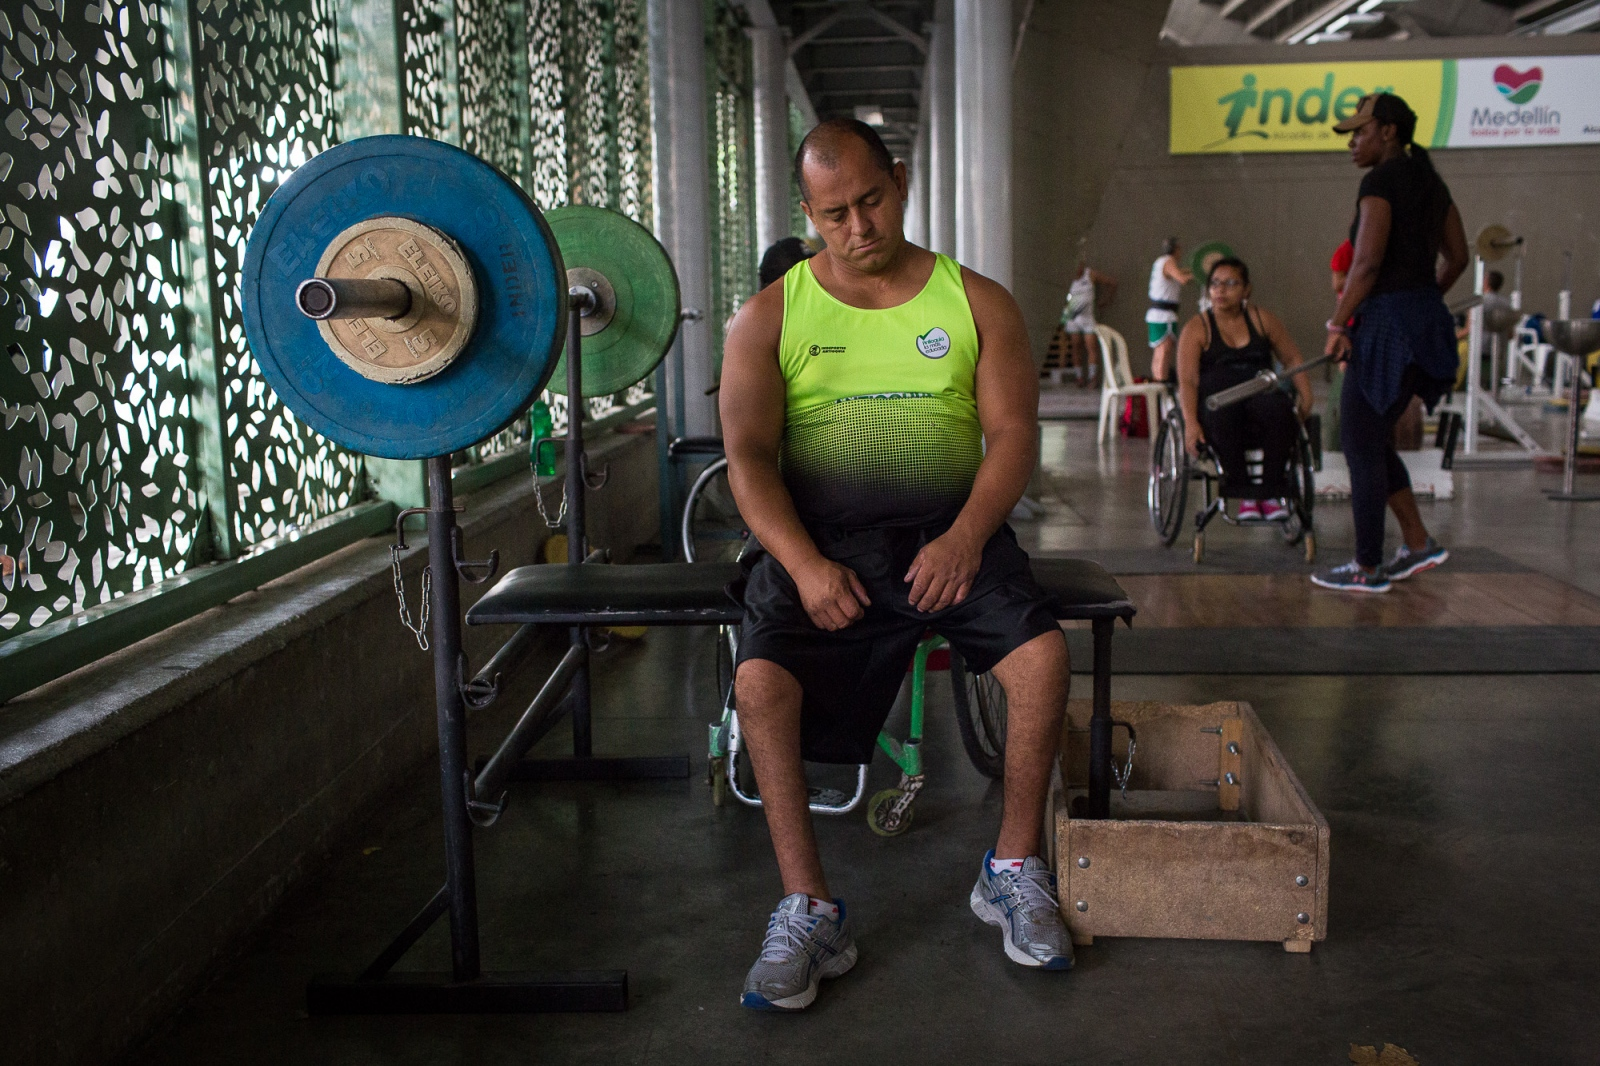 Joe Gonzalez Bettencourt, 38, tries to relax after some weight lifting exercises in the gymnasium at Atanasio Girardot Stadium, Medellin, 10th March, 2016.